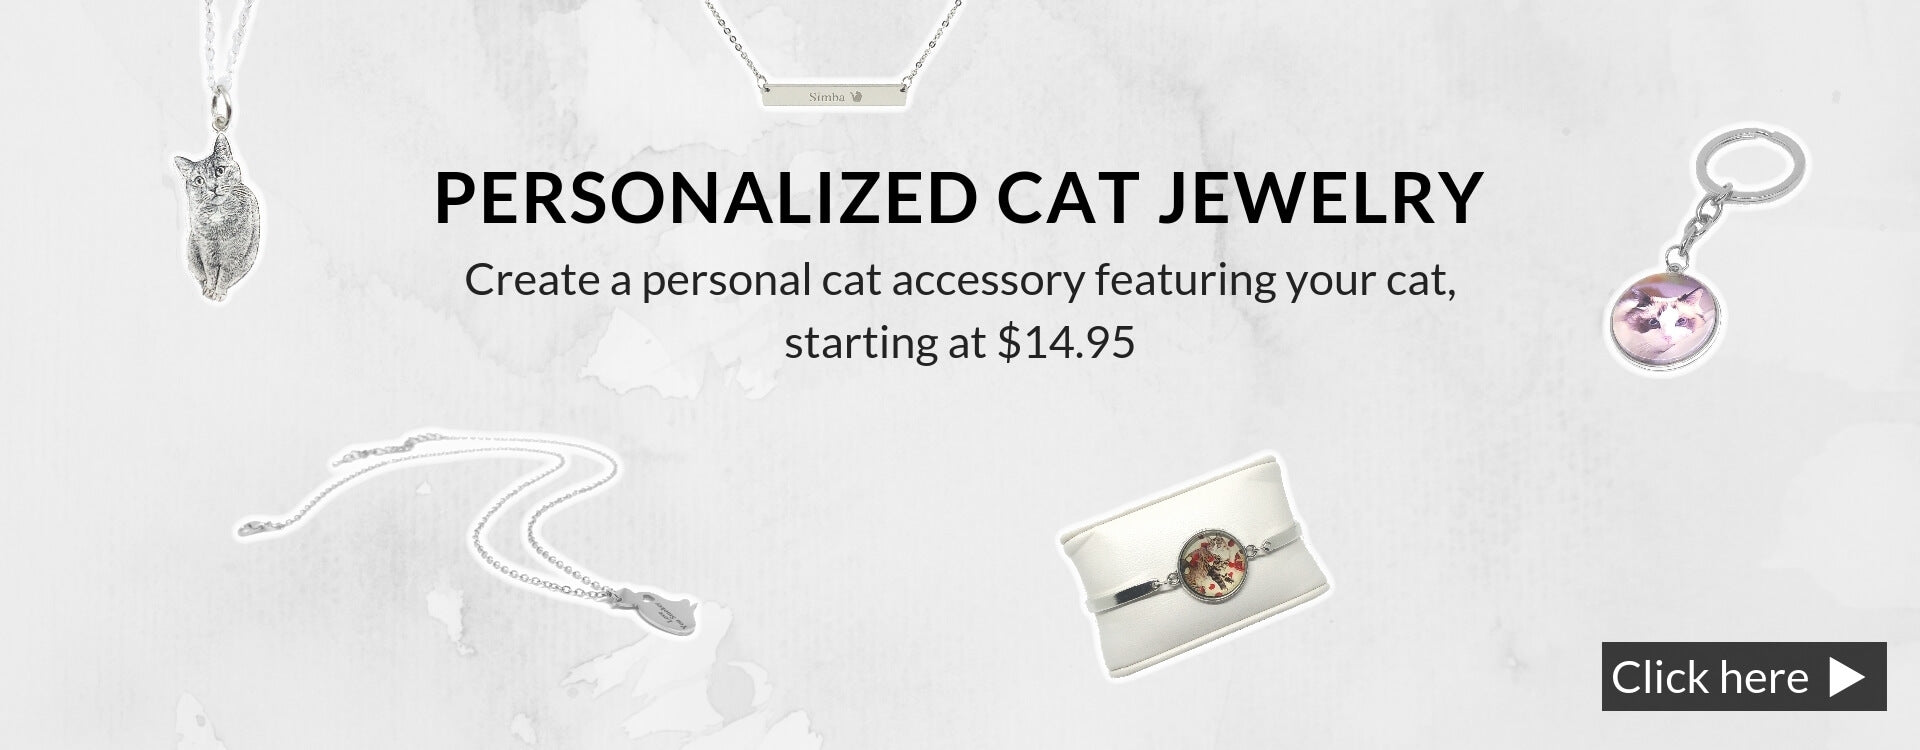 personalized cat jewelry banner